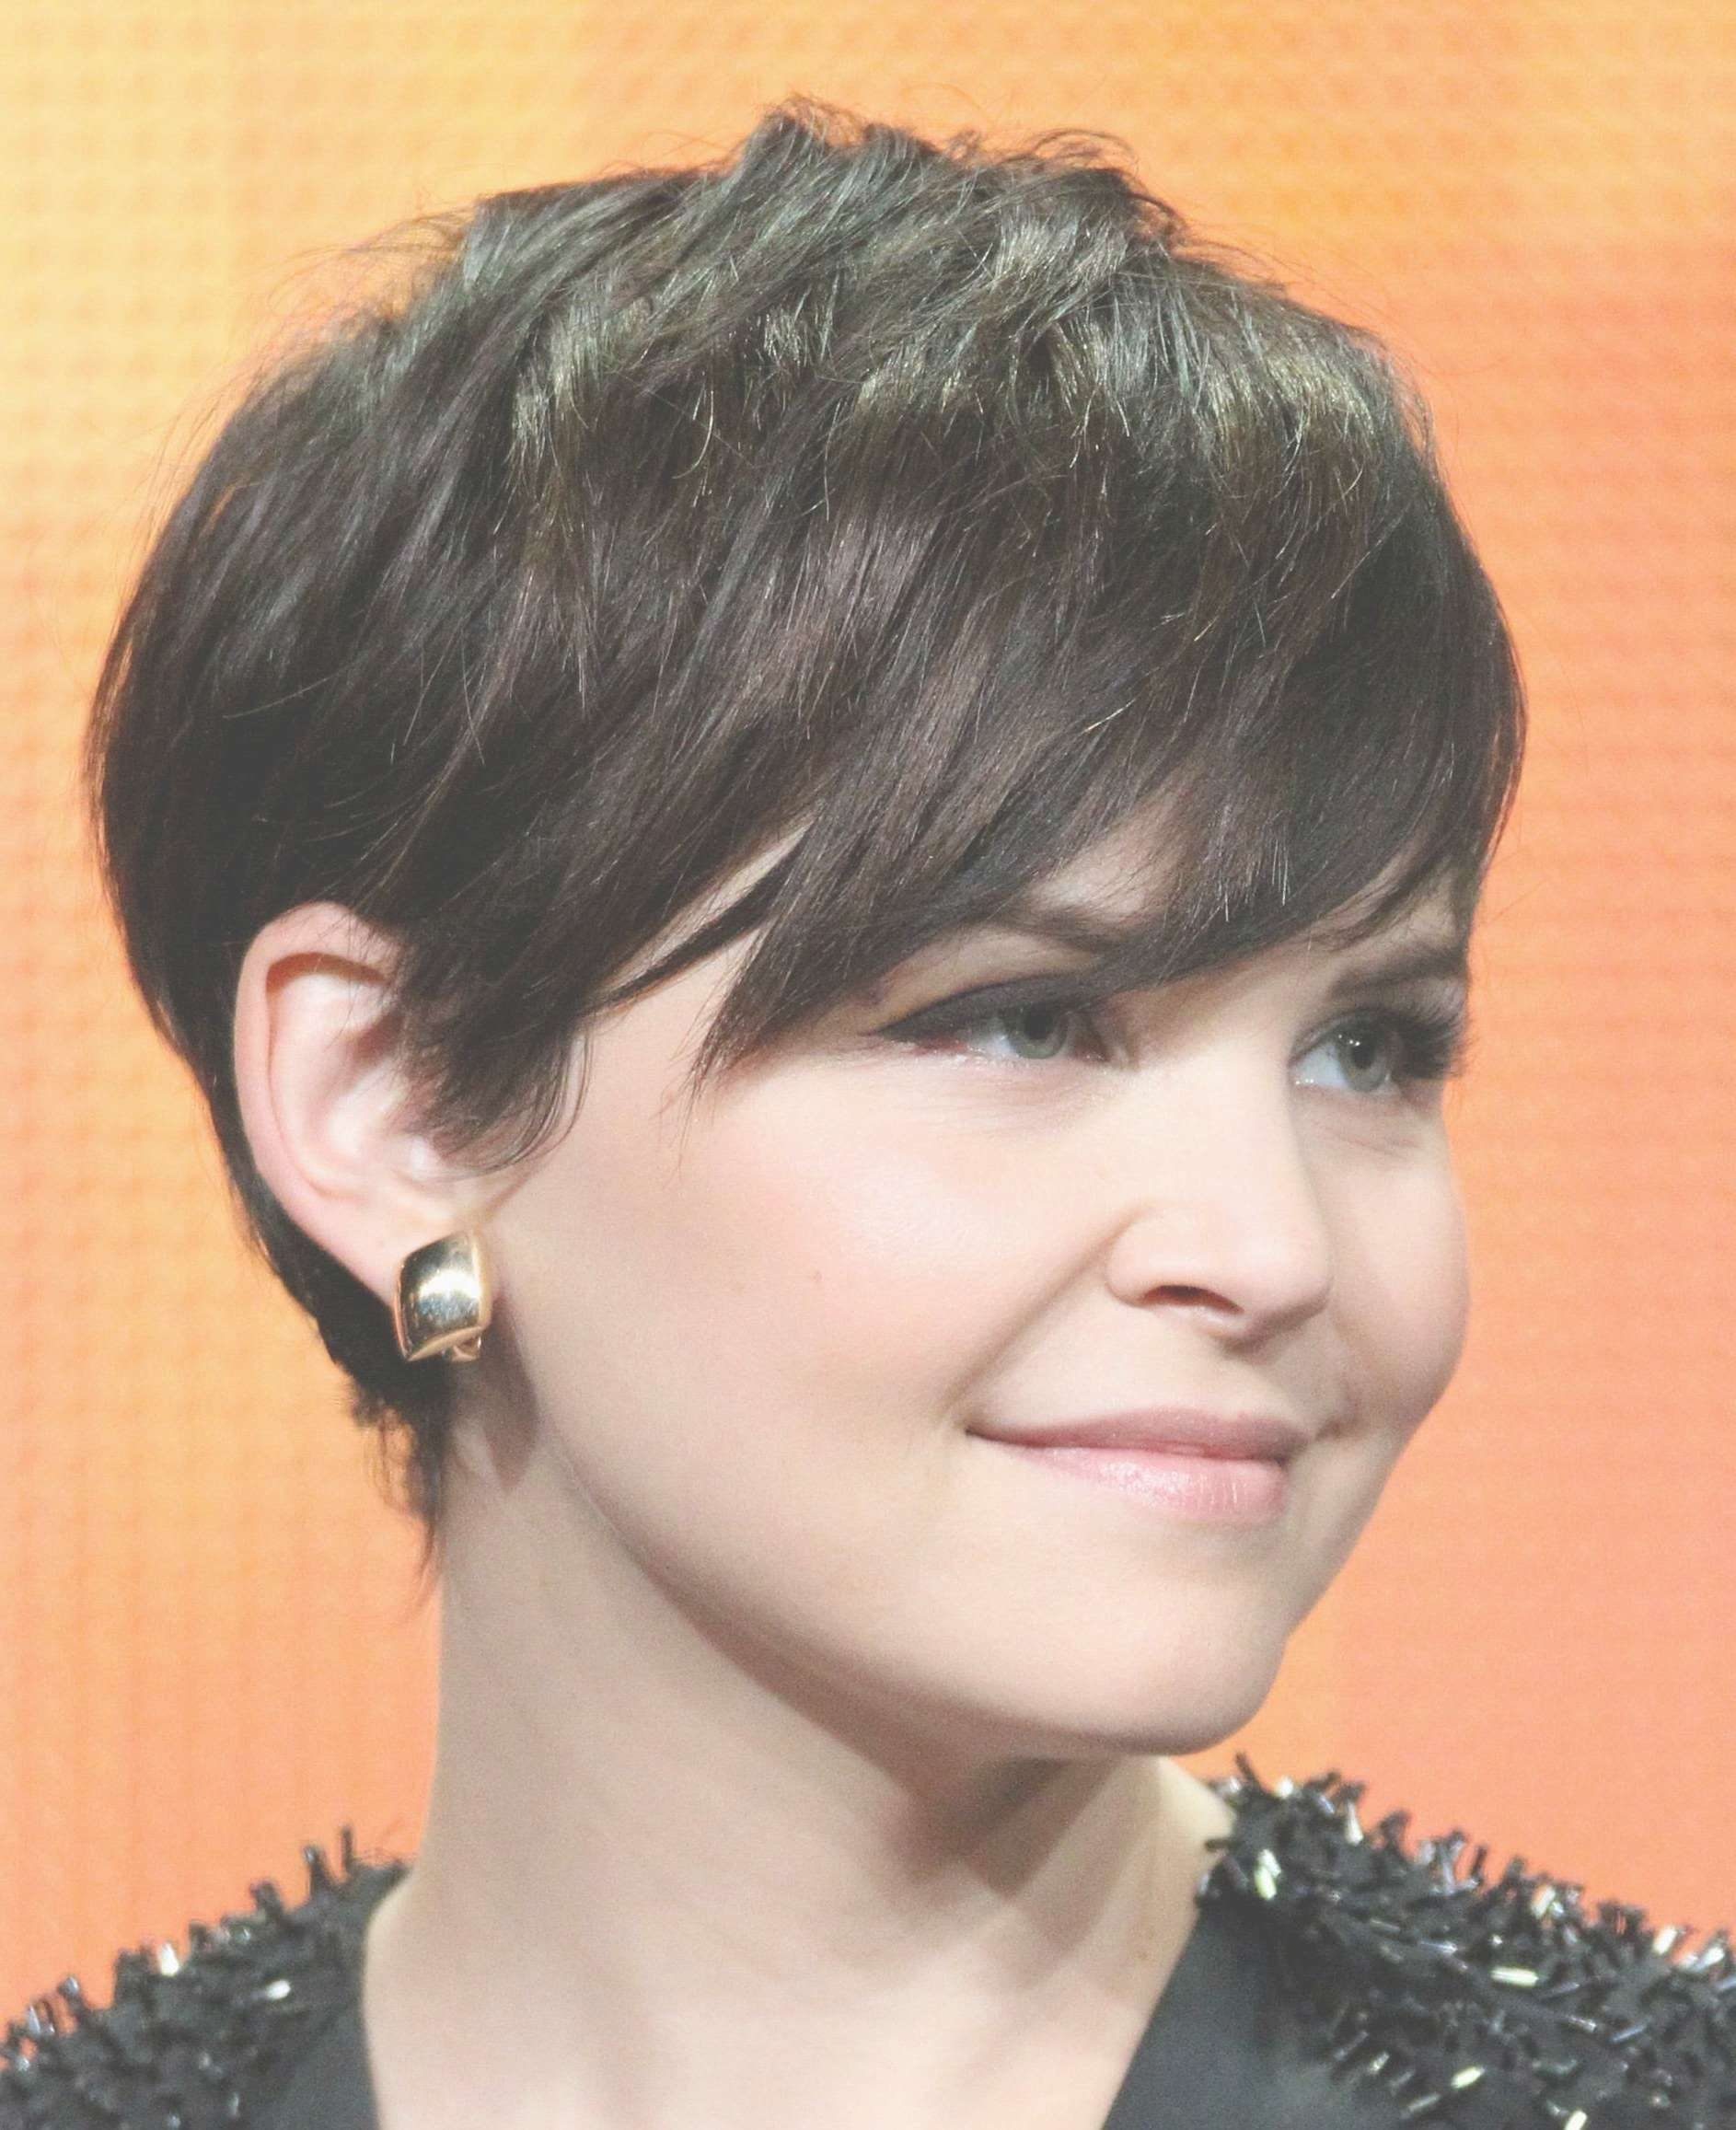 Ginnifer Goodwin Pixie Haircut Tutorial | The Salon Guy – Youtube Throughout Most Popular Bob And Pixie Hairstyles (Gallery 14 of 16)